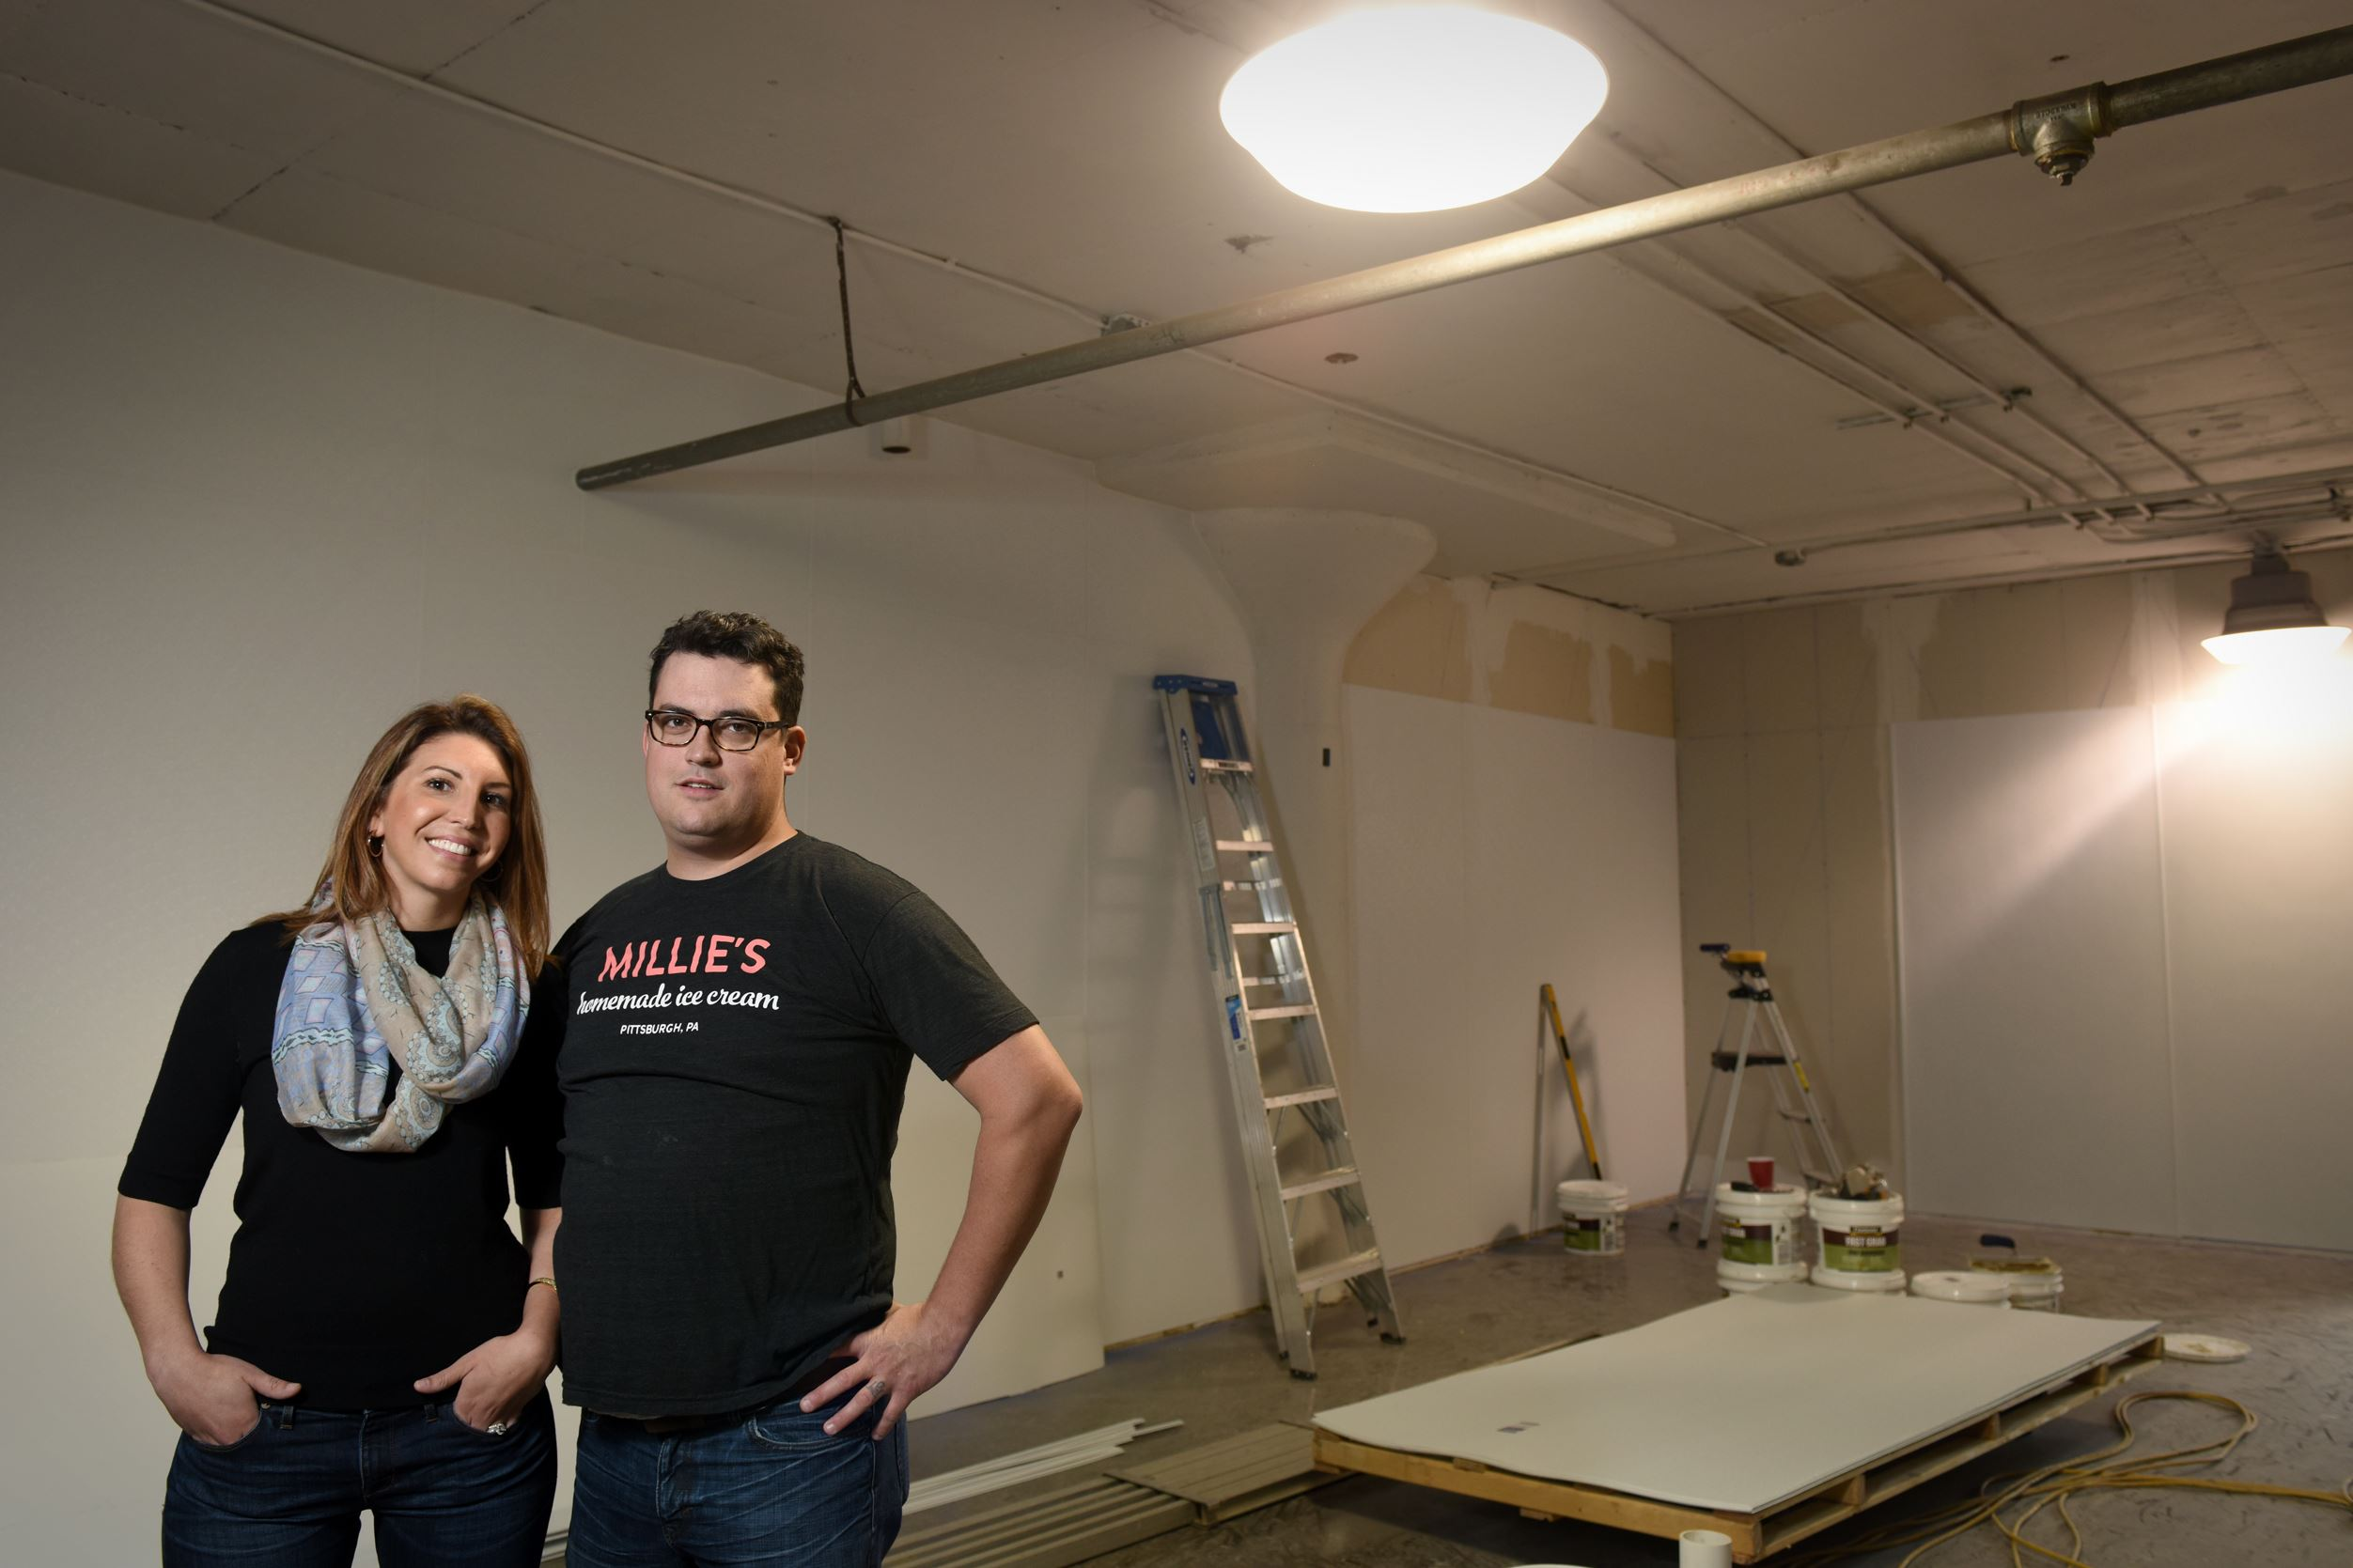 Lauren and Chad Townsend Lauren and Chad Townsend founded Millie's Homemade Ice Cream, which will soon occupy this space in a mural-covered building on Lynn Way in North Point Breeze.